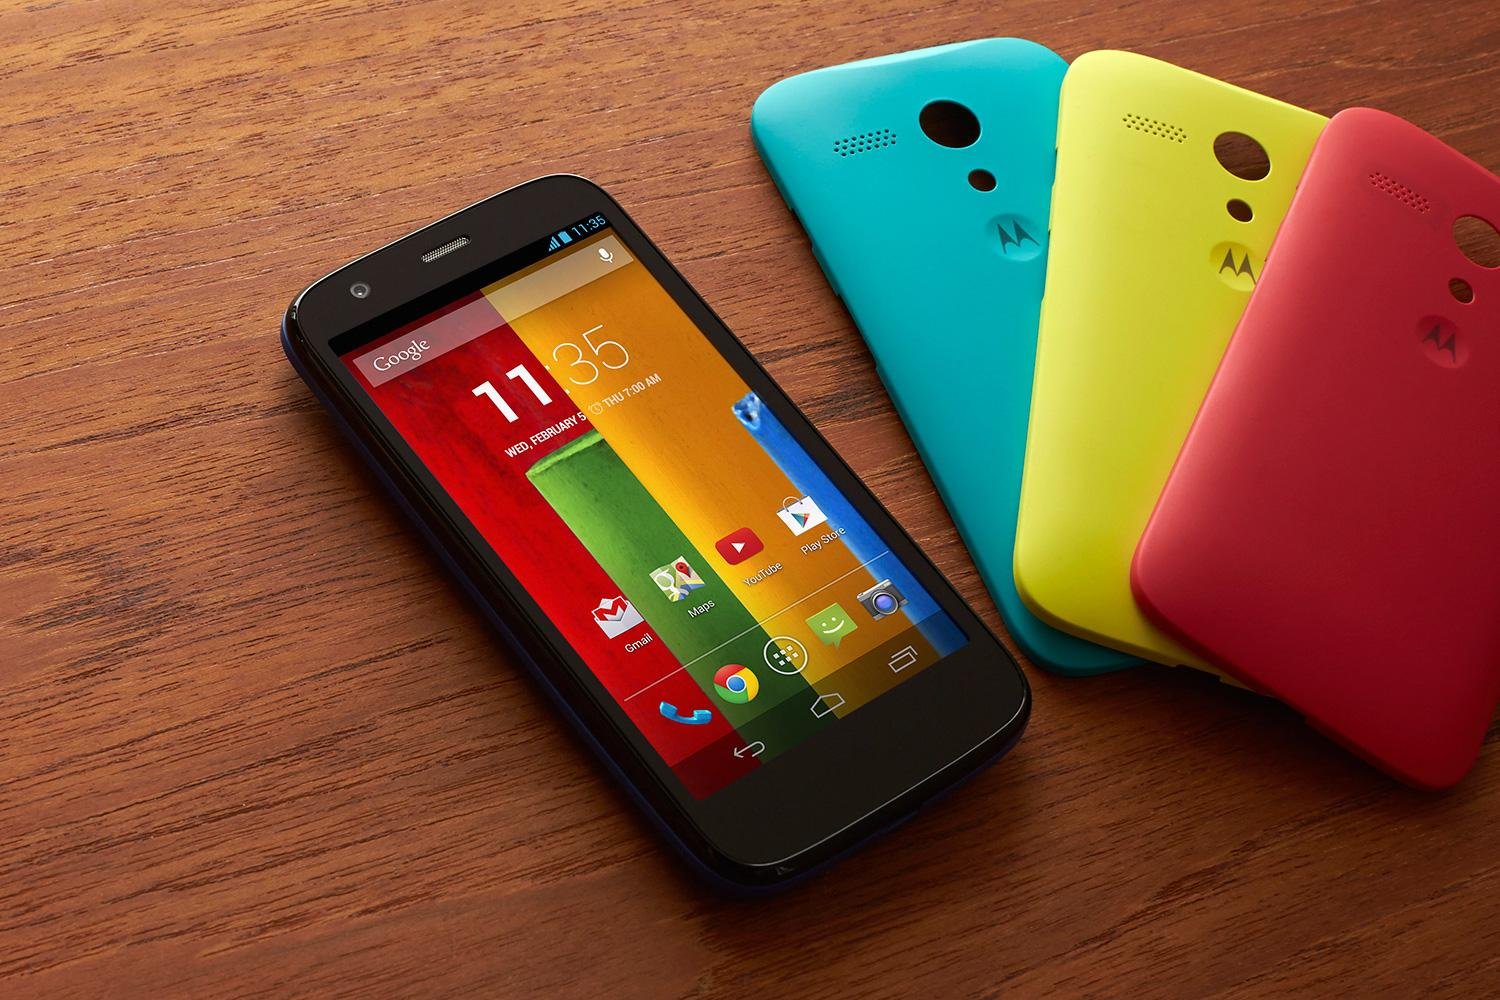 Moto G2 Release Date and Price